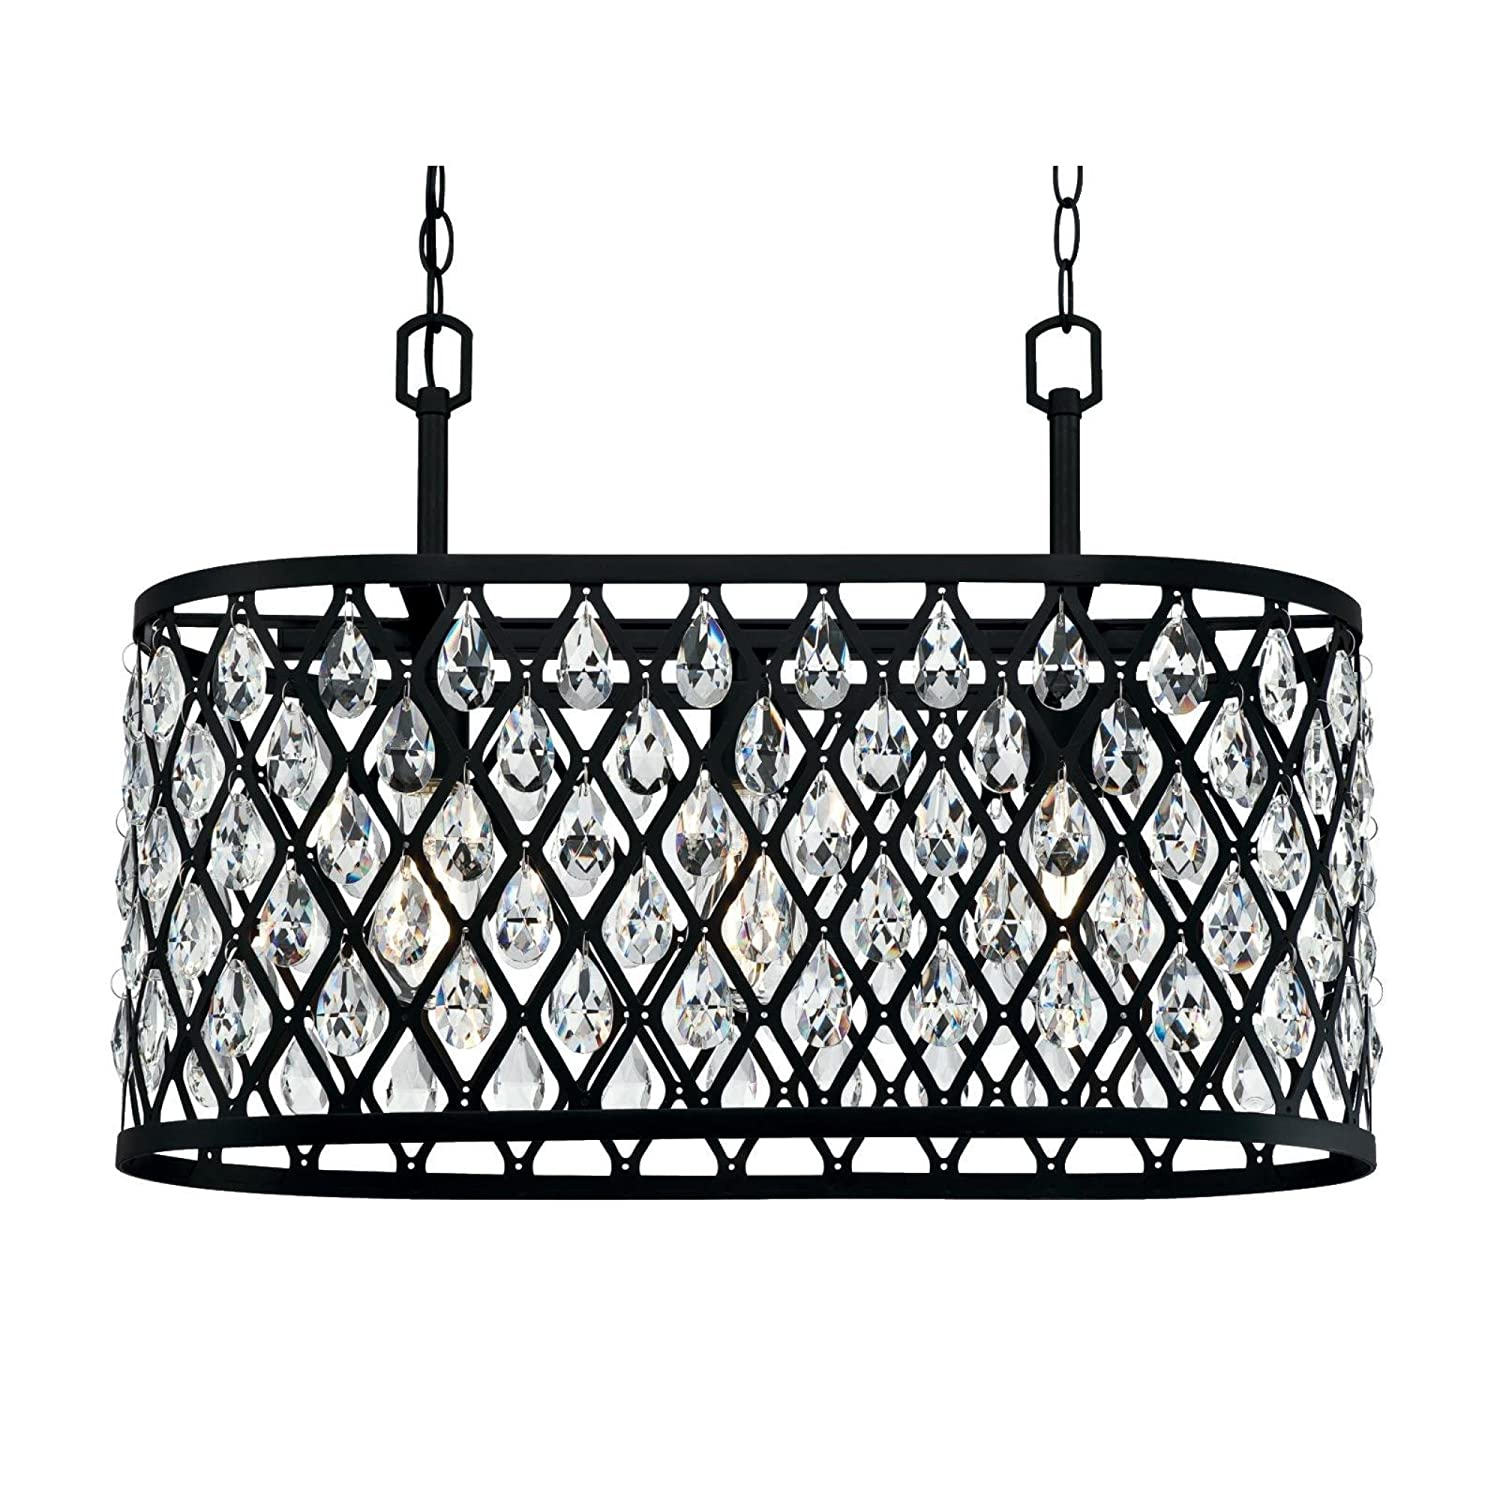 Westinghouse Lighting 6355000 Waltz Three-Light Indoor, Matte Black Finish Mesh with Crystals Chandelier, 3 White